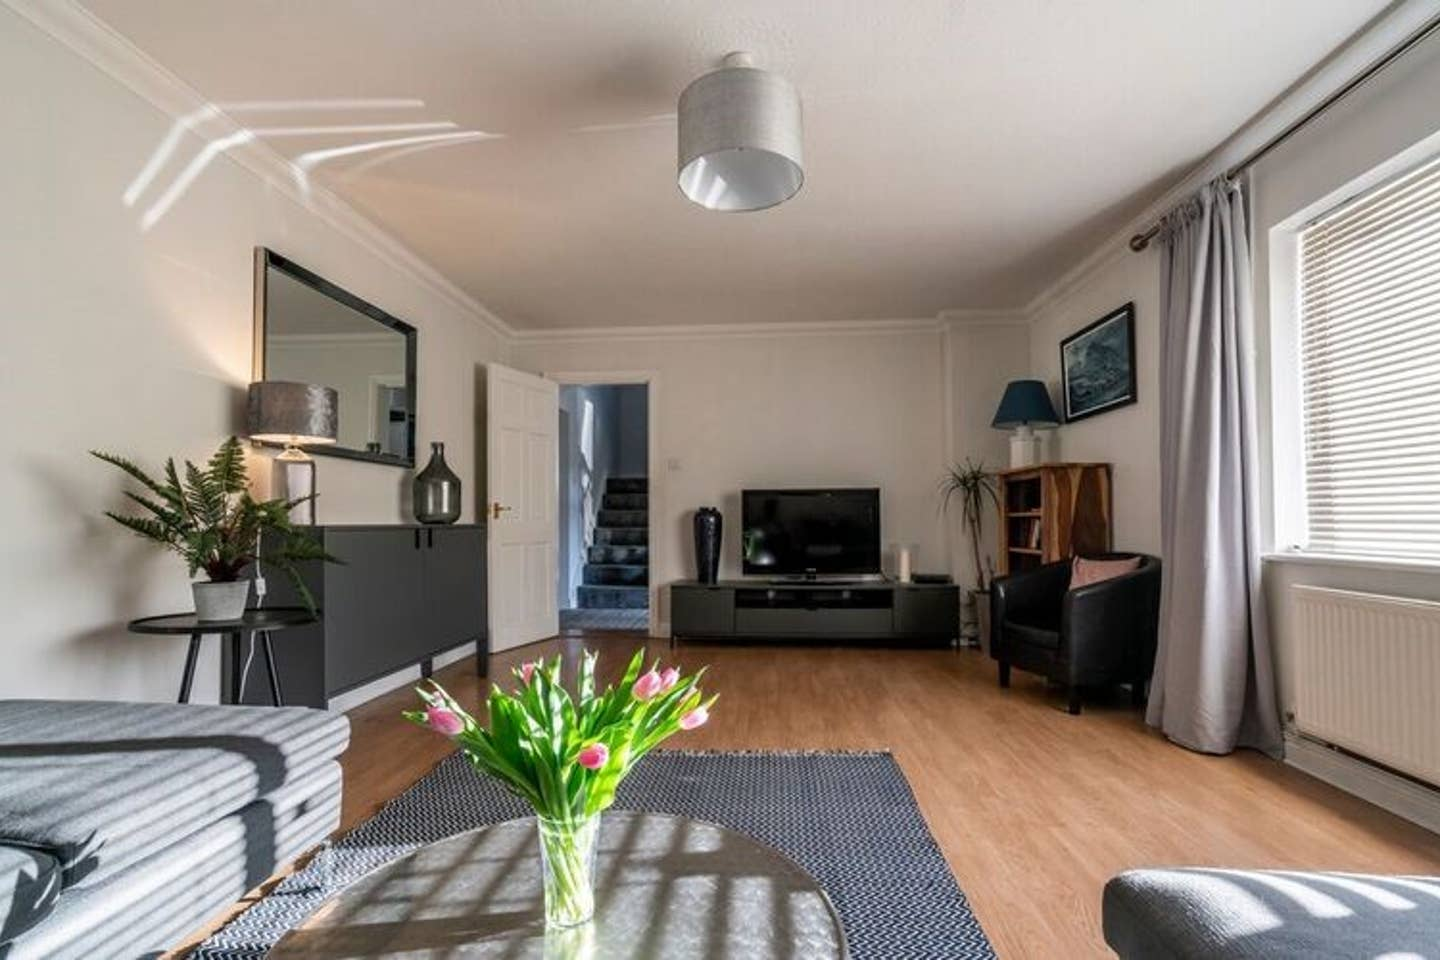 The Slate Lodge - Modern 3 Bedroom House, located in the village of Tal y Bont approx. 2 miles from the city centre of Bangor.